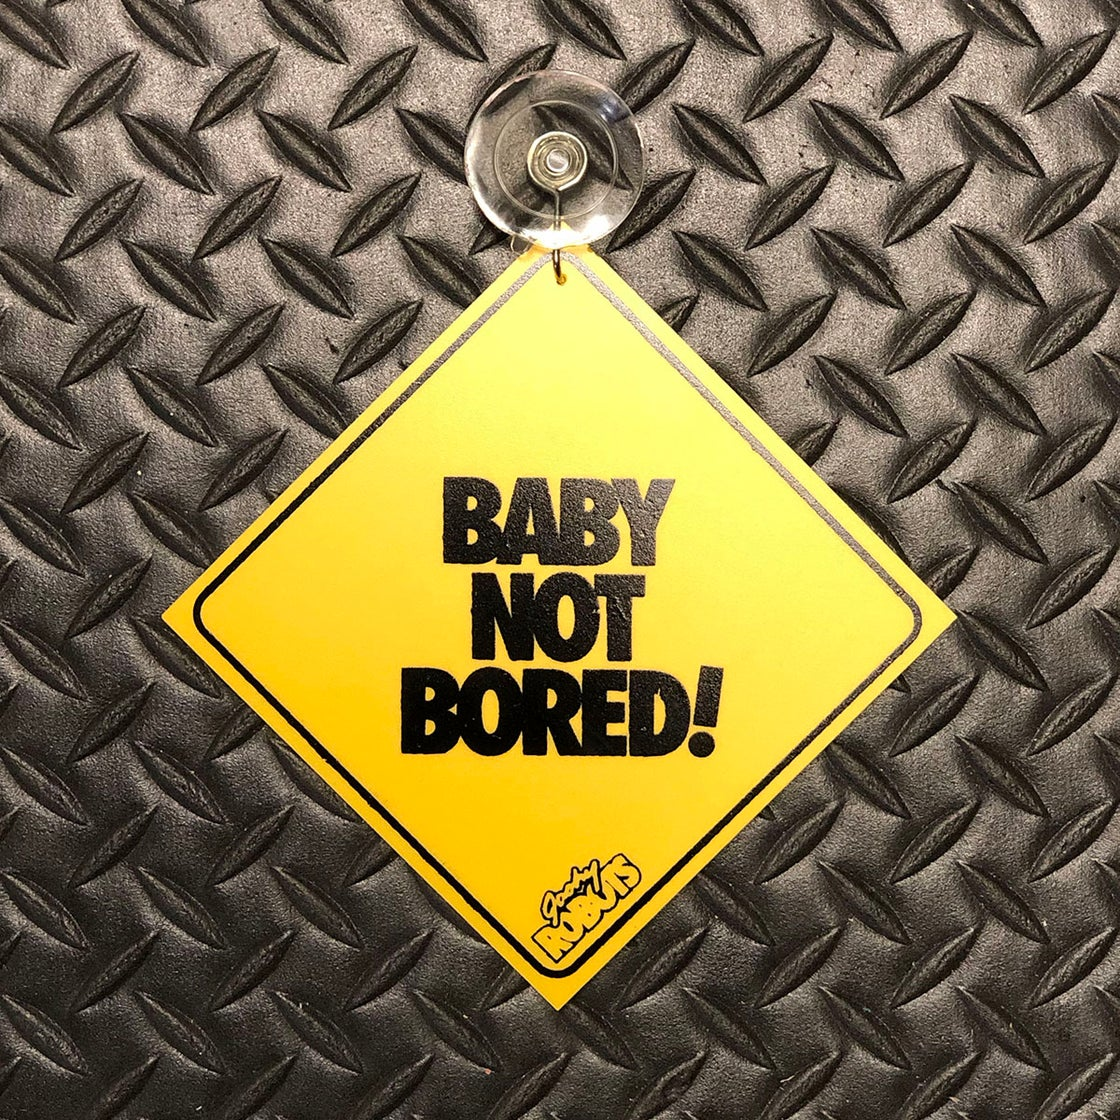 Image of Baby Not Bored!